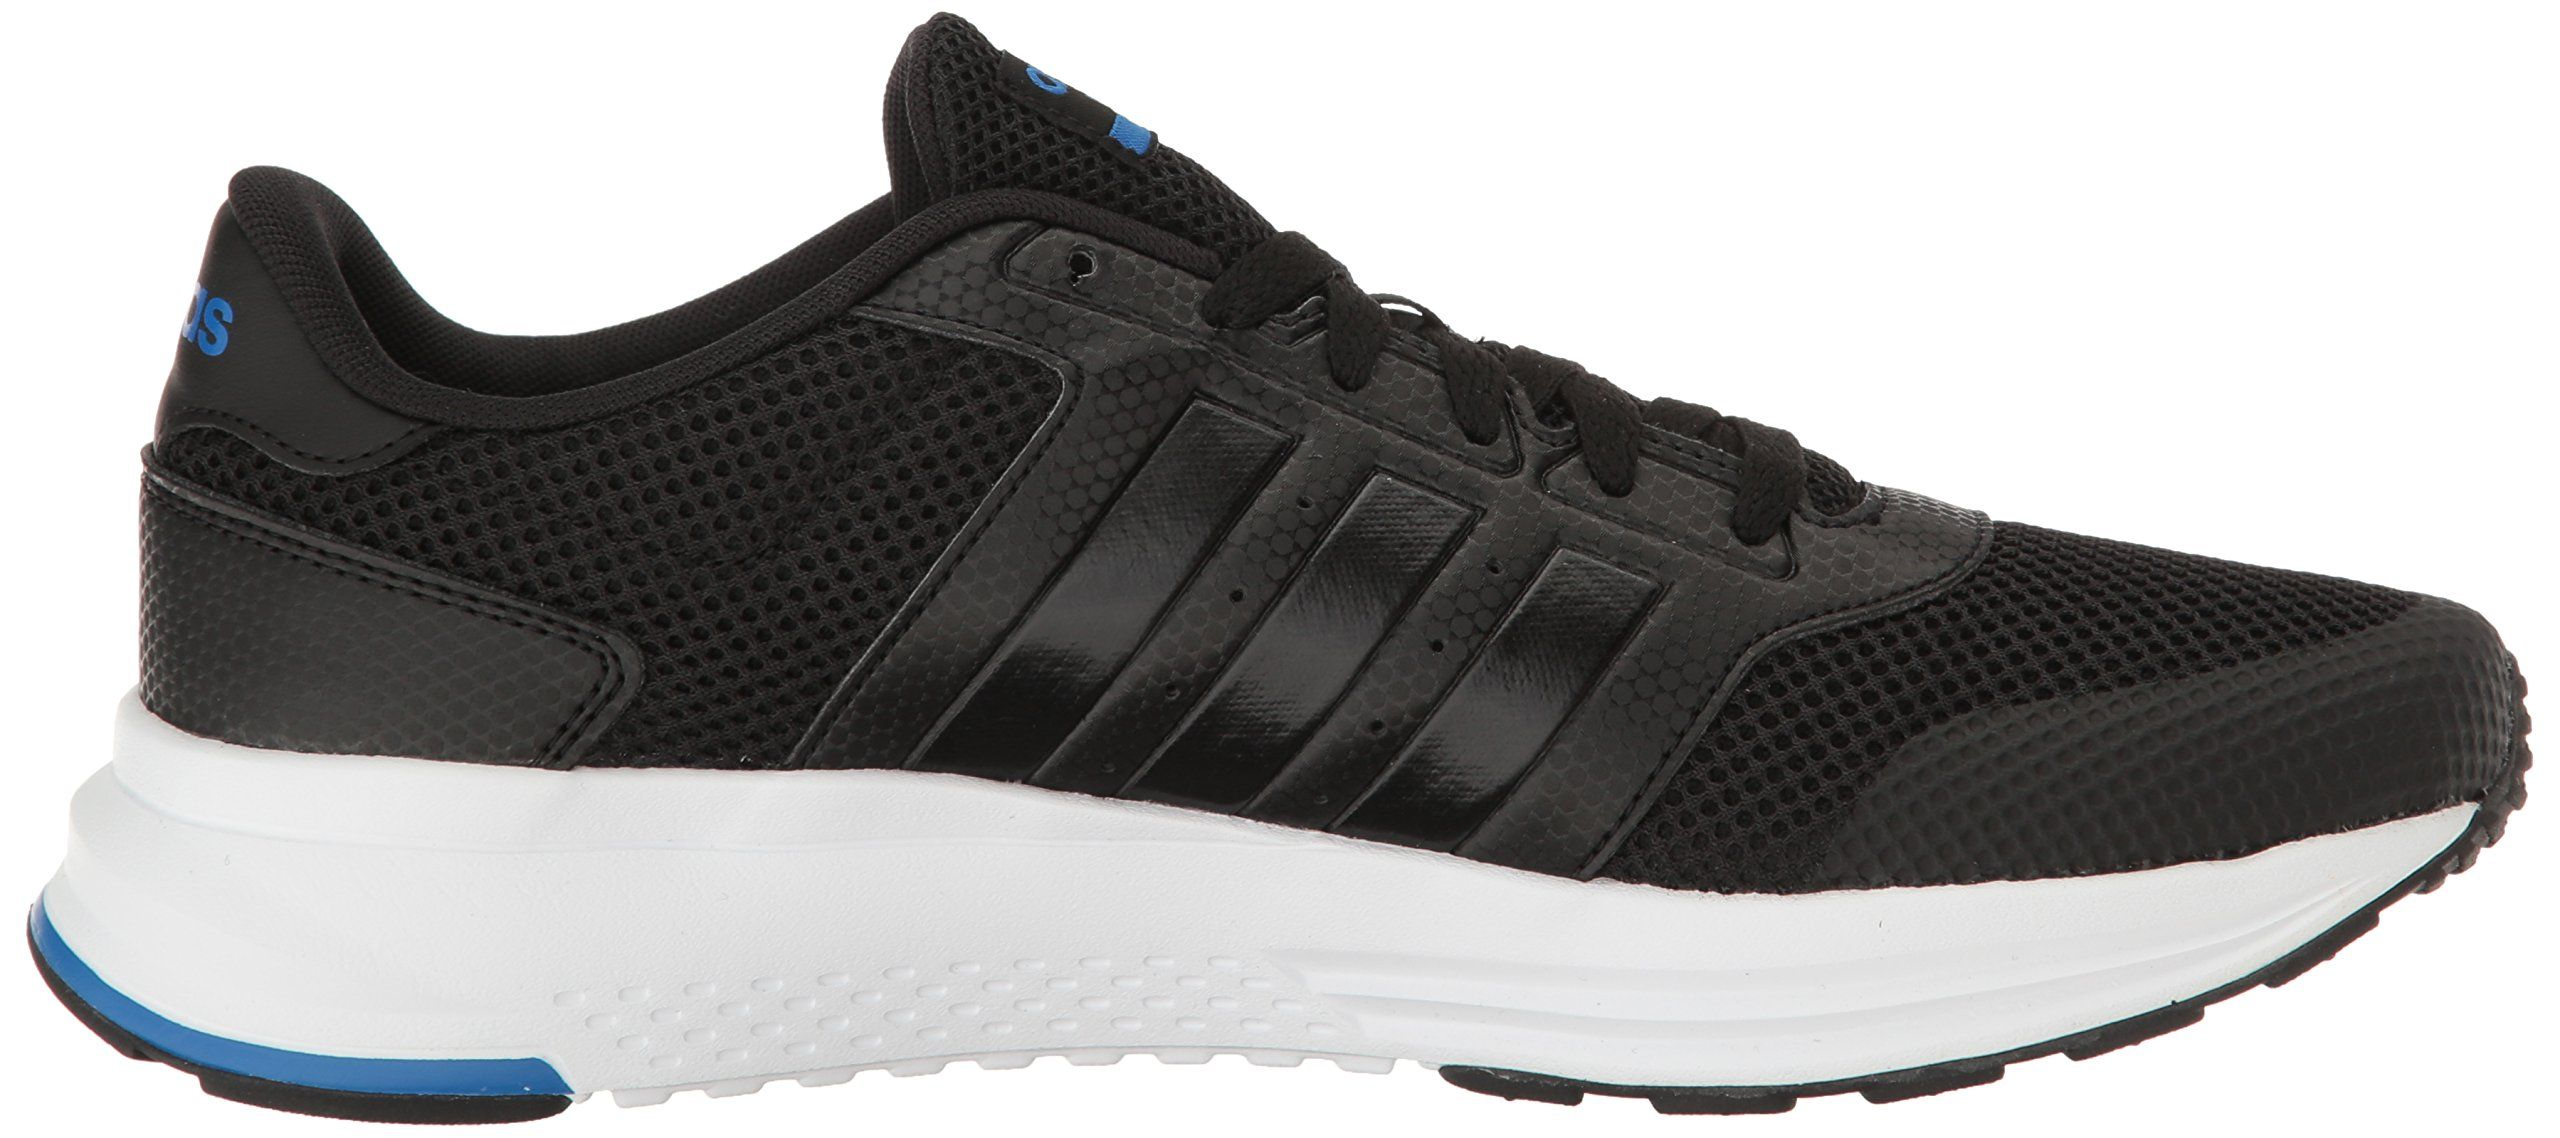 huge selection of 45b42 9bb66 adidas NEO Mens Cloudfoam Saturn Running Shoe BlackBlackBlue 12 M US   Read more reviews of the product by visiting the link on the image.